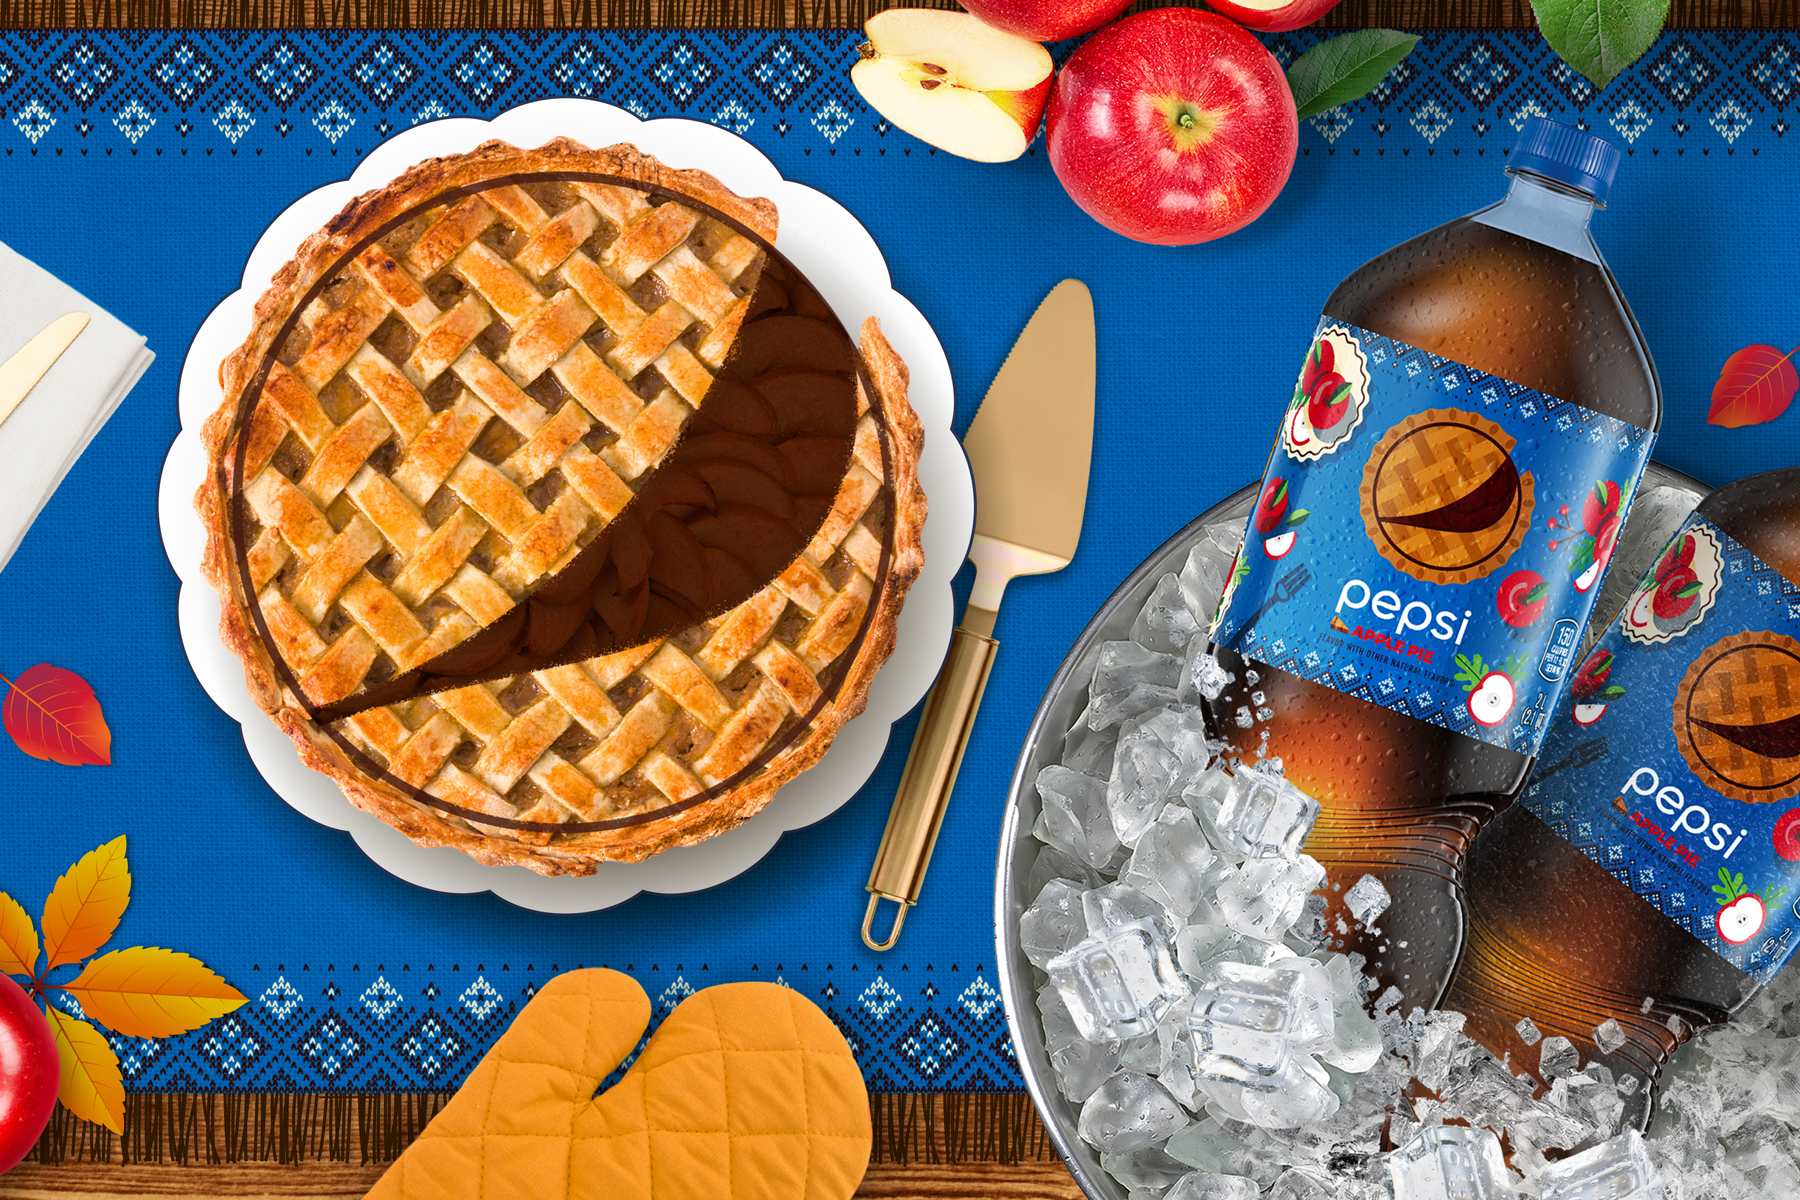 Holiday table spread with pie and Pepsi